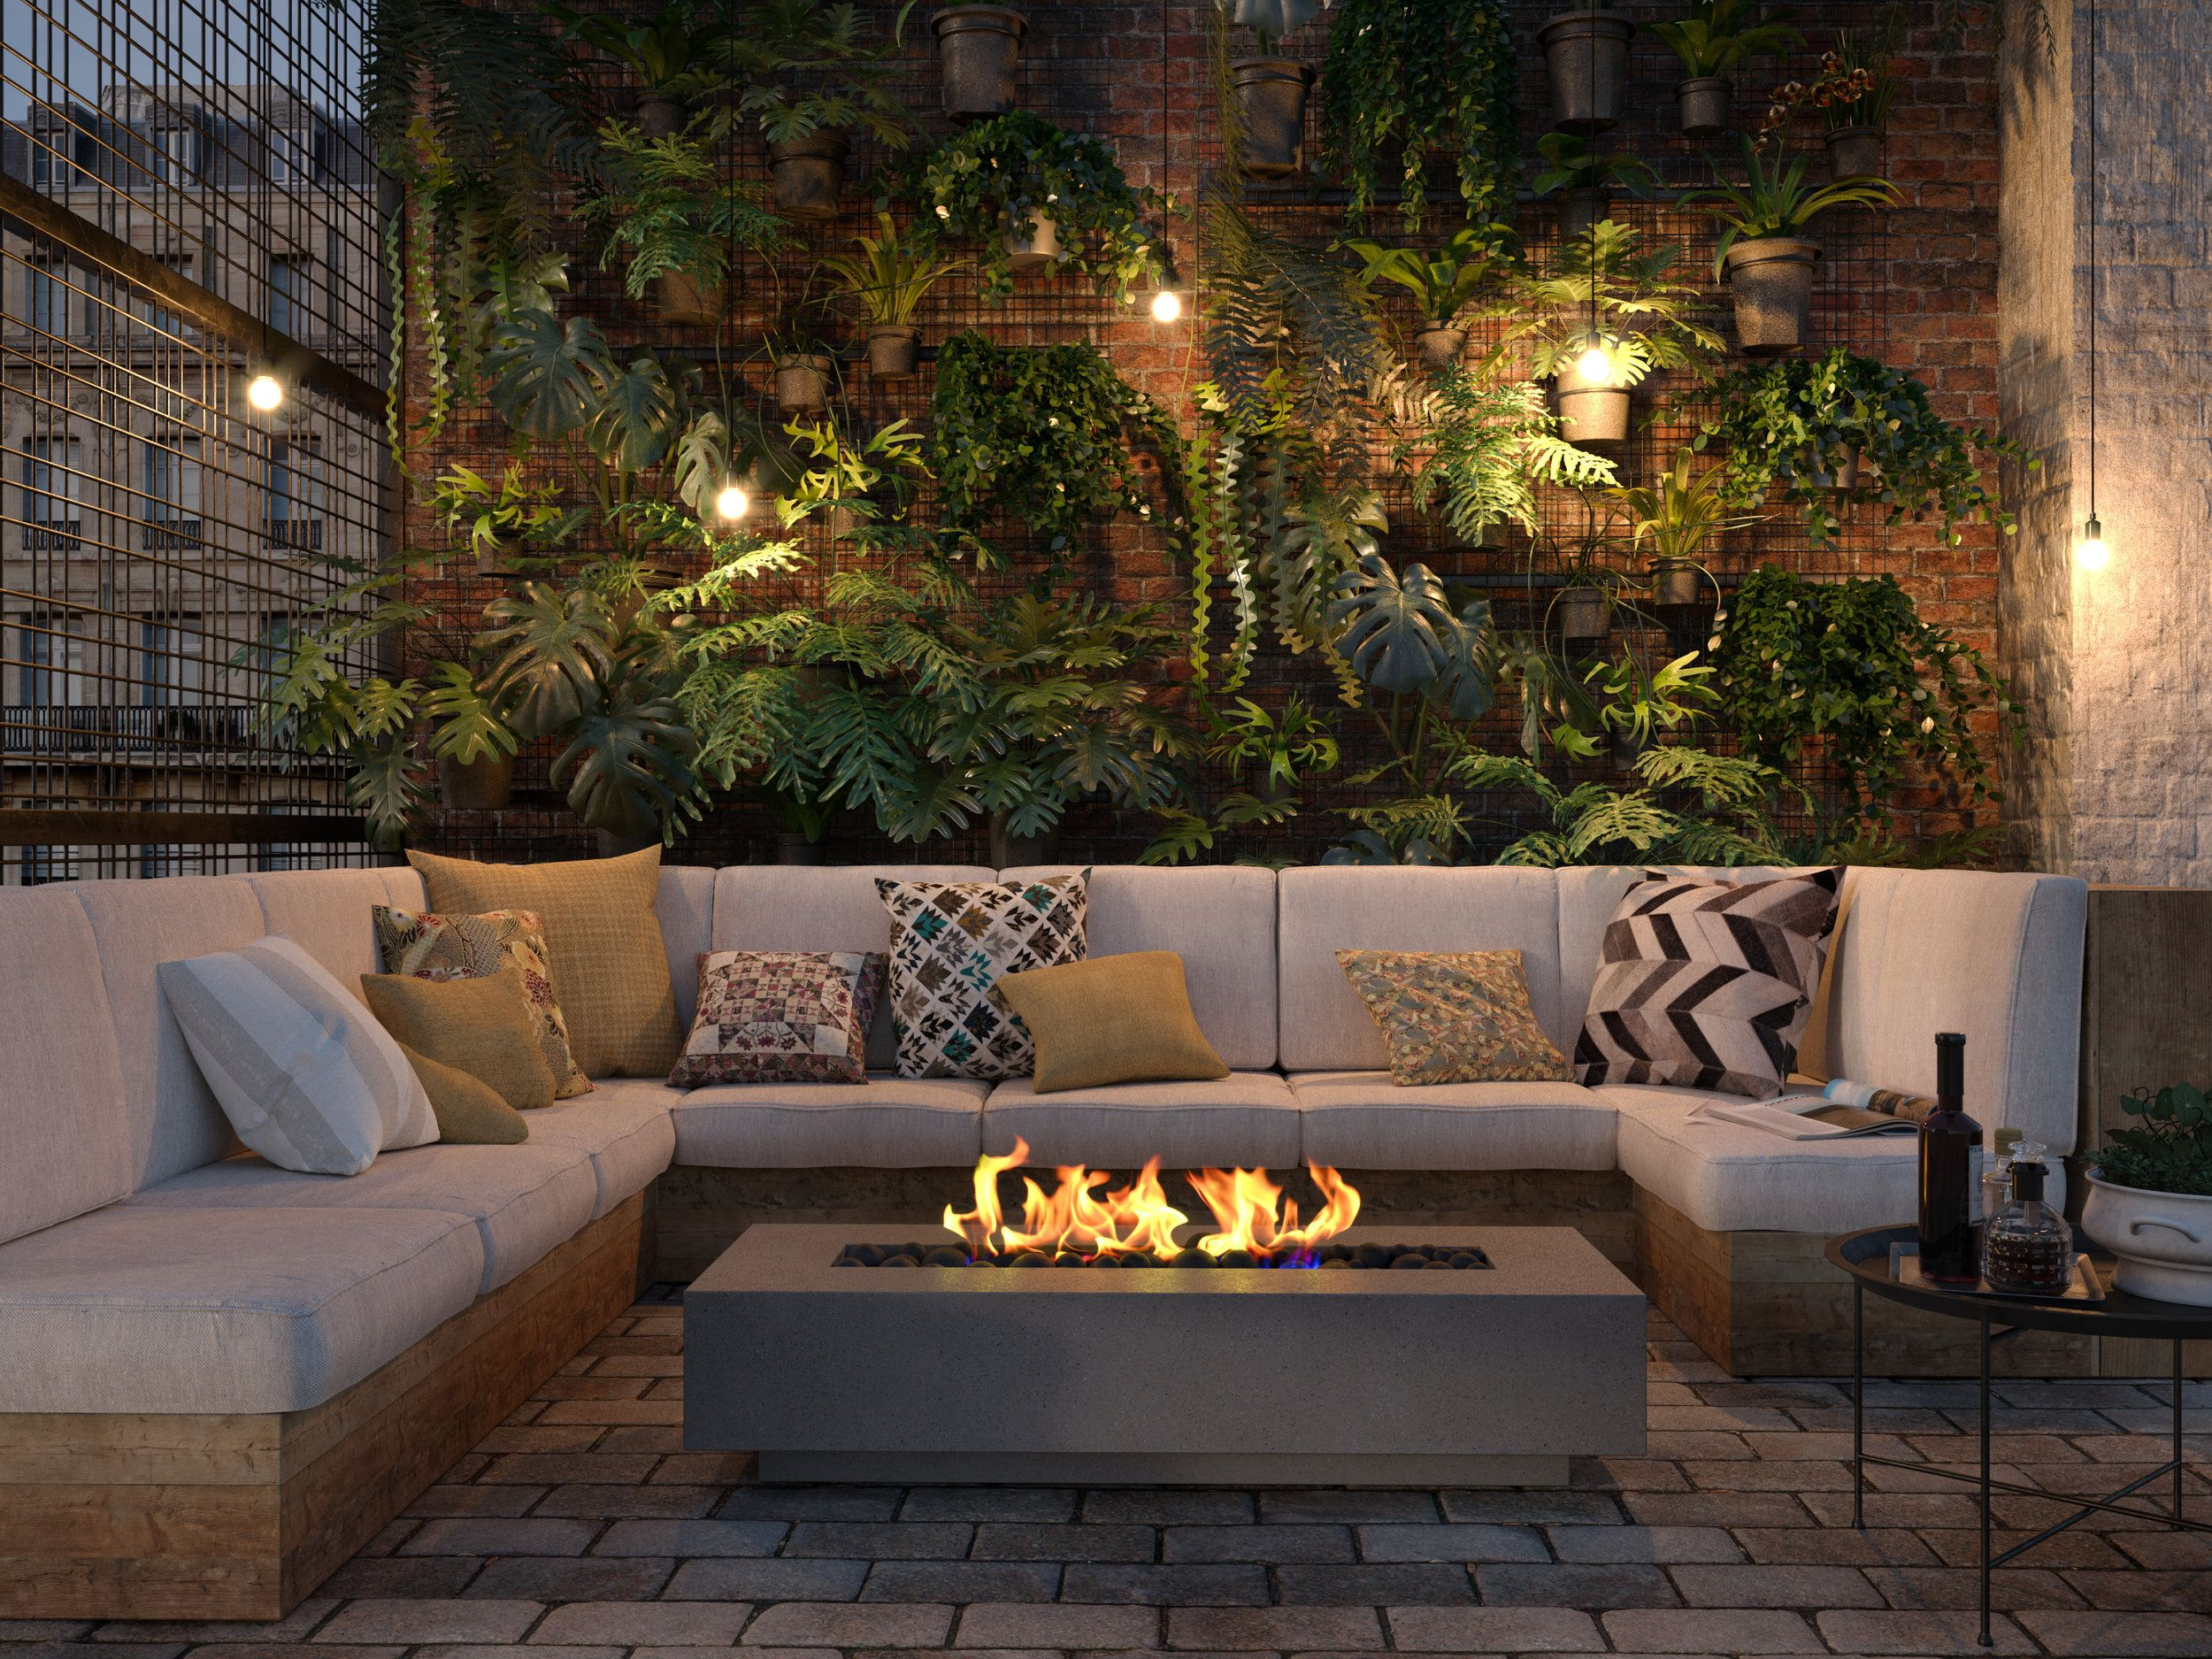 Studio Nisho Modern Outdoor Fire Pits Creating An Inviting Outdoor Space Modern Outdoor Firepit Modern Outdoor Patio Outdoor Fire Pit Seating Modern patio fire pit